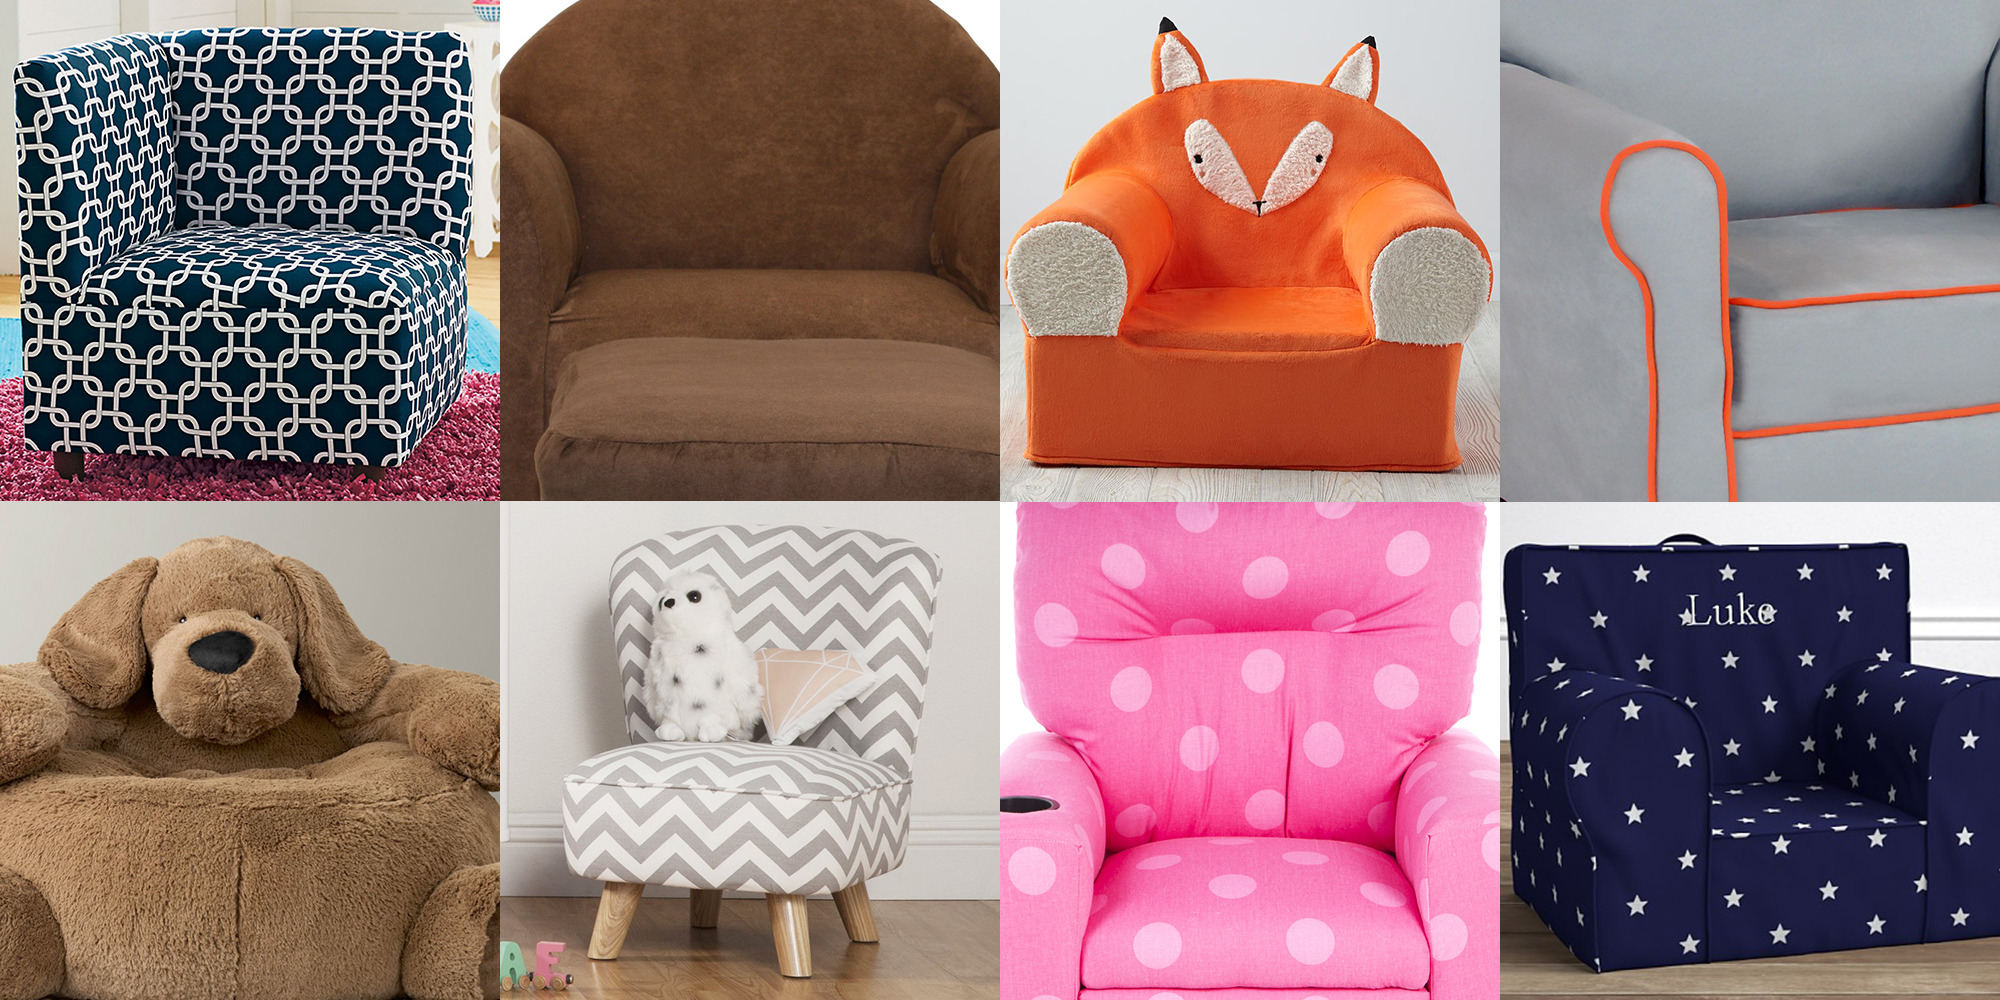 11 best kids upholstered chairs in 2018 upholstered for Small stuffed chairs